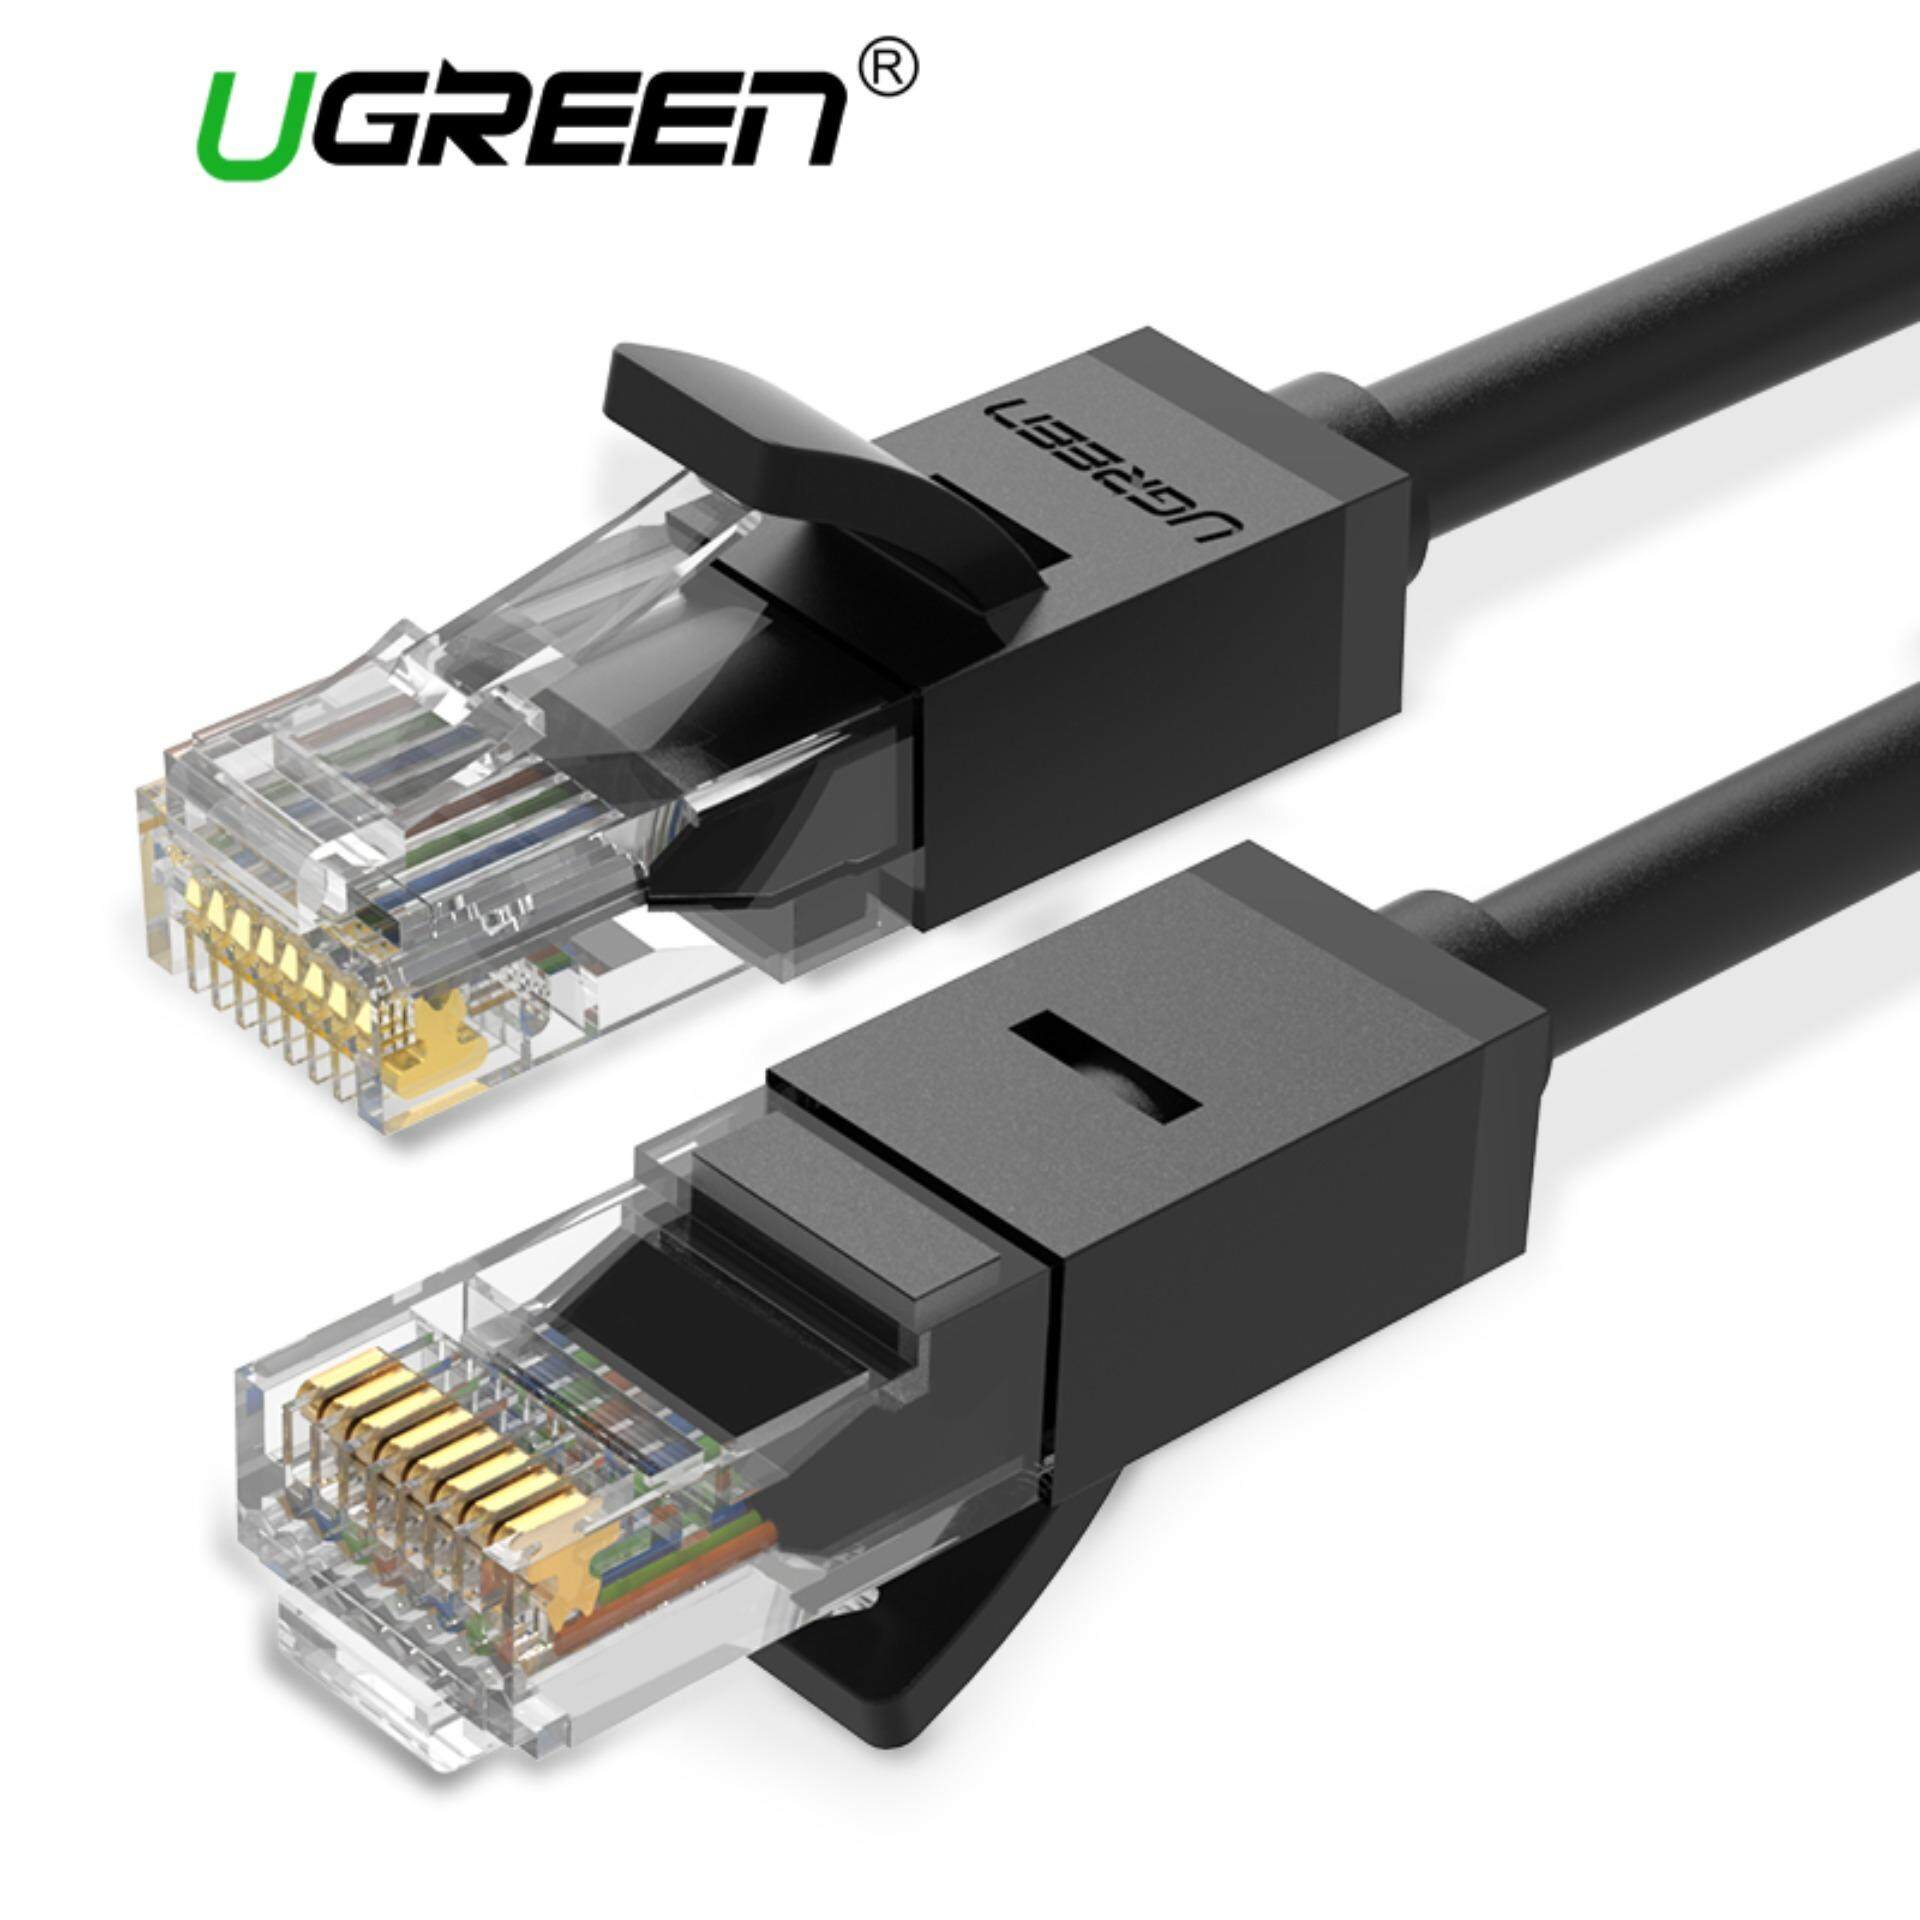 Ugreen 2meter Cat6 Ethernet Patch Cable Gigabit Rj45 Network Wire Wiring 15 Meter Lan Plug Connector For